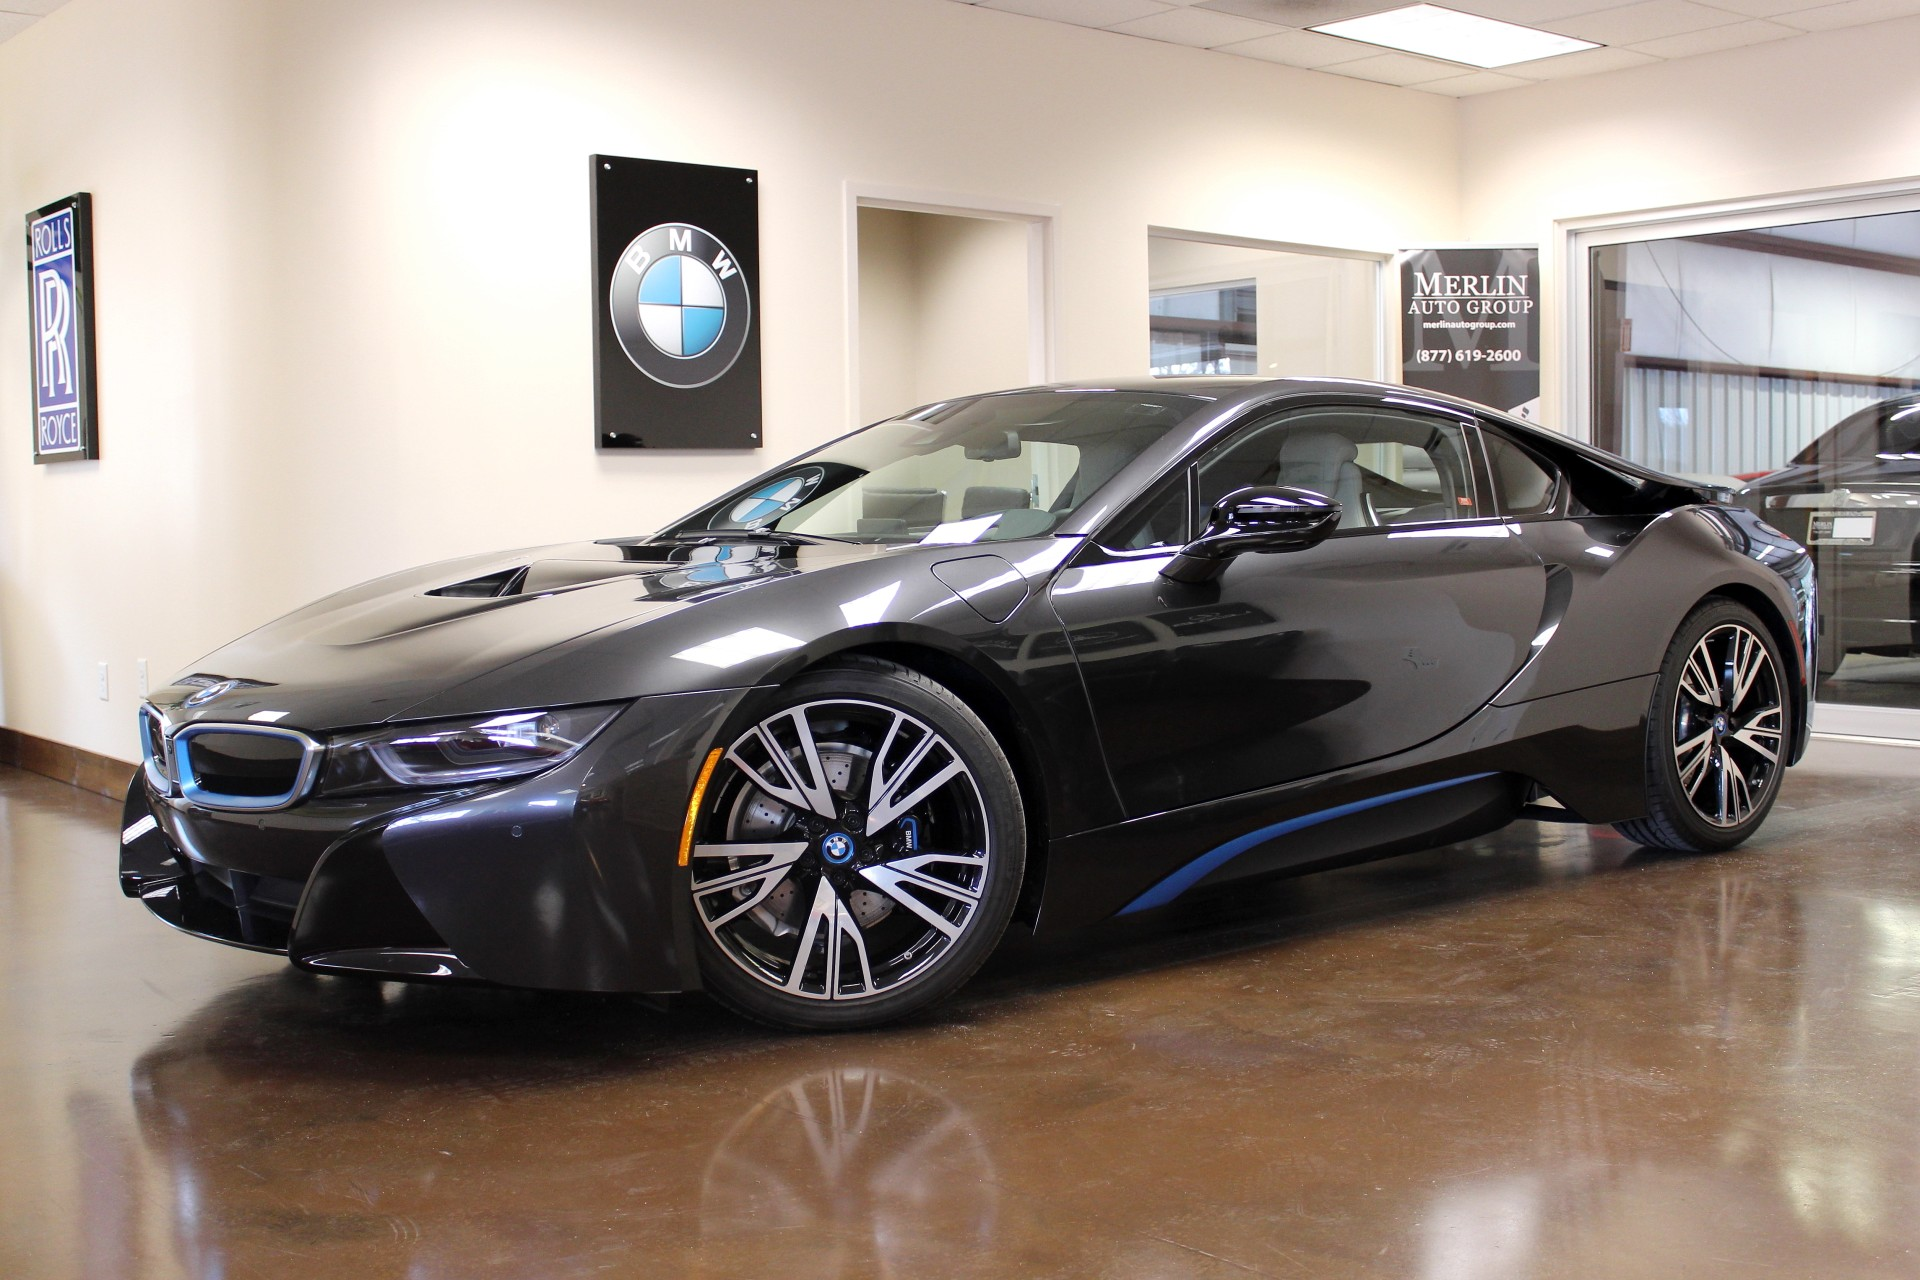 used 2015 bmw i8 stock p3009a ultra luxury car from merlin auto group. Black Bedroom Furniture Sets. Home Design Ideas